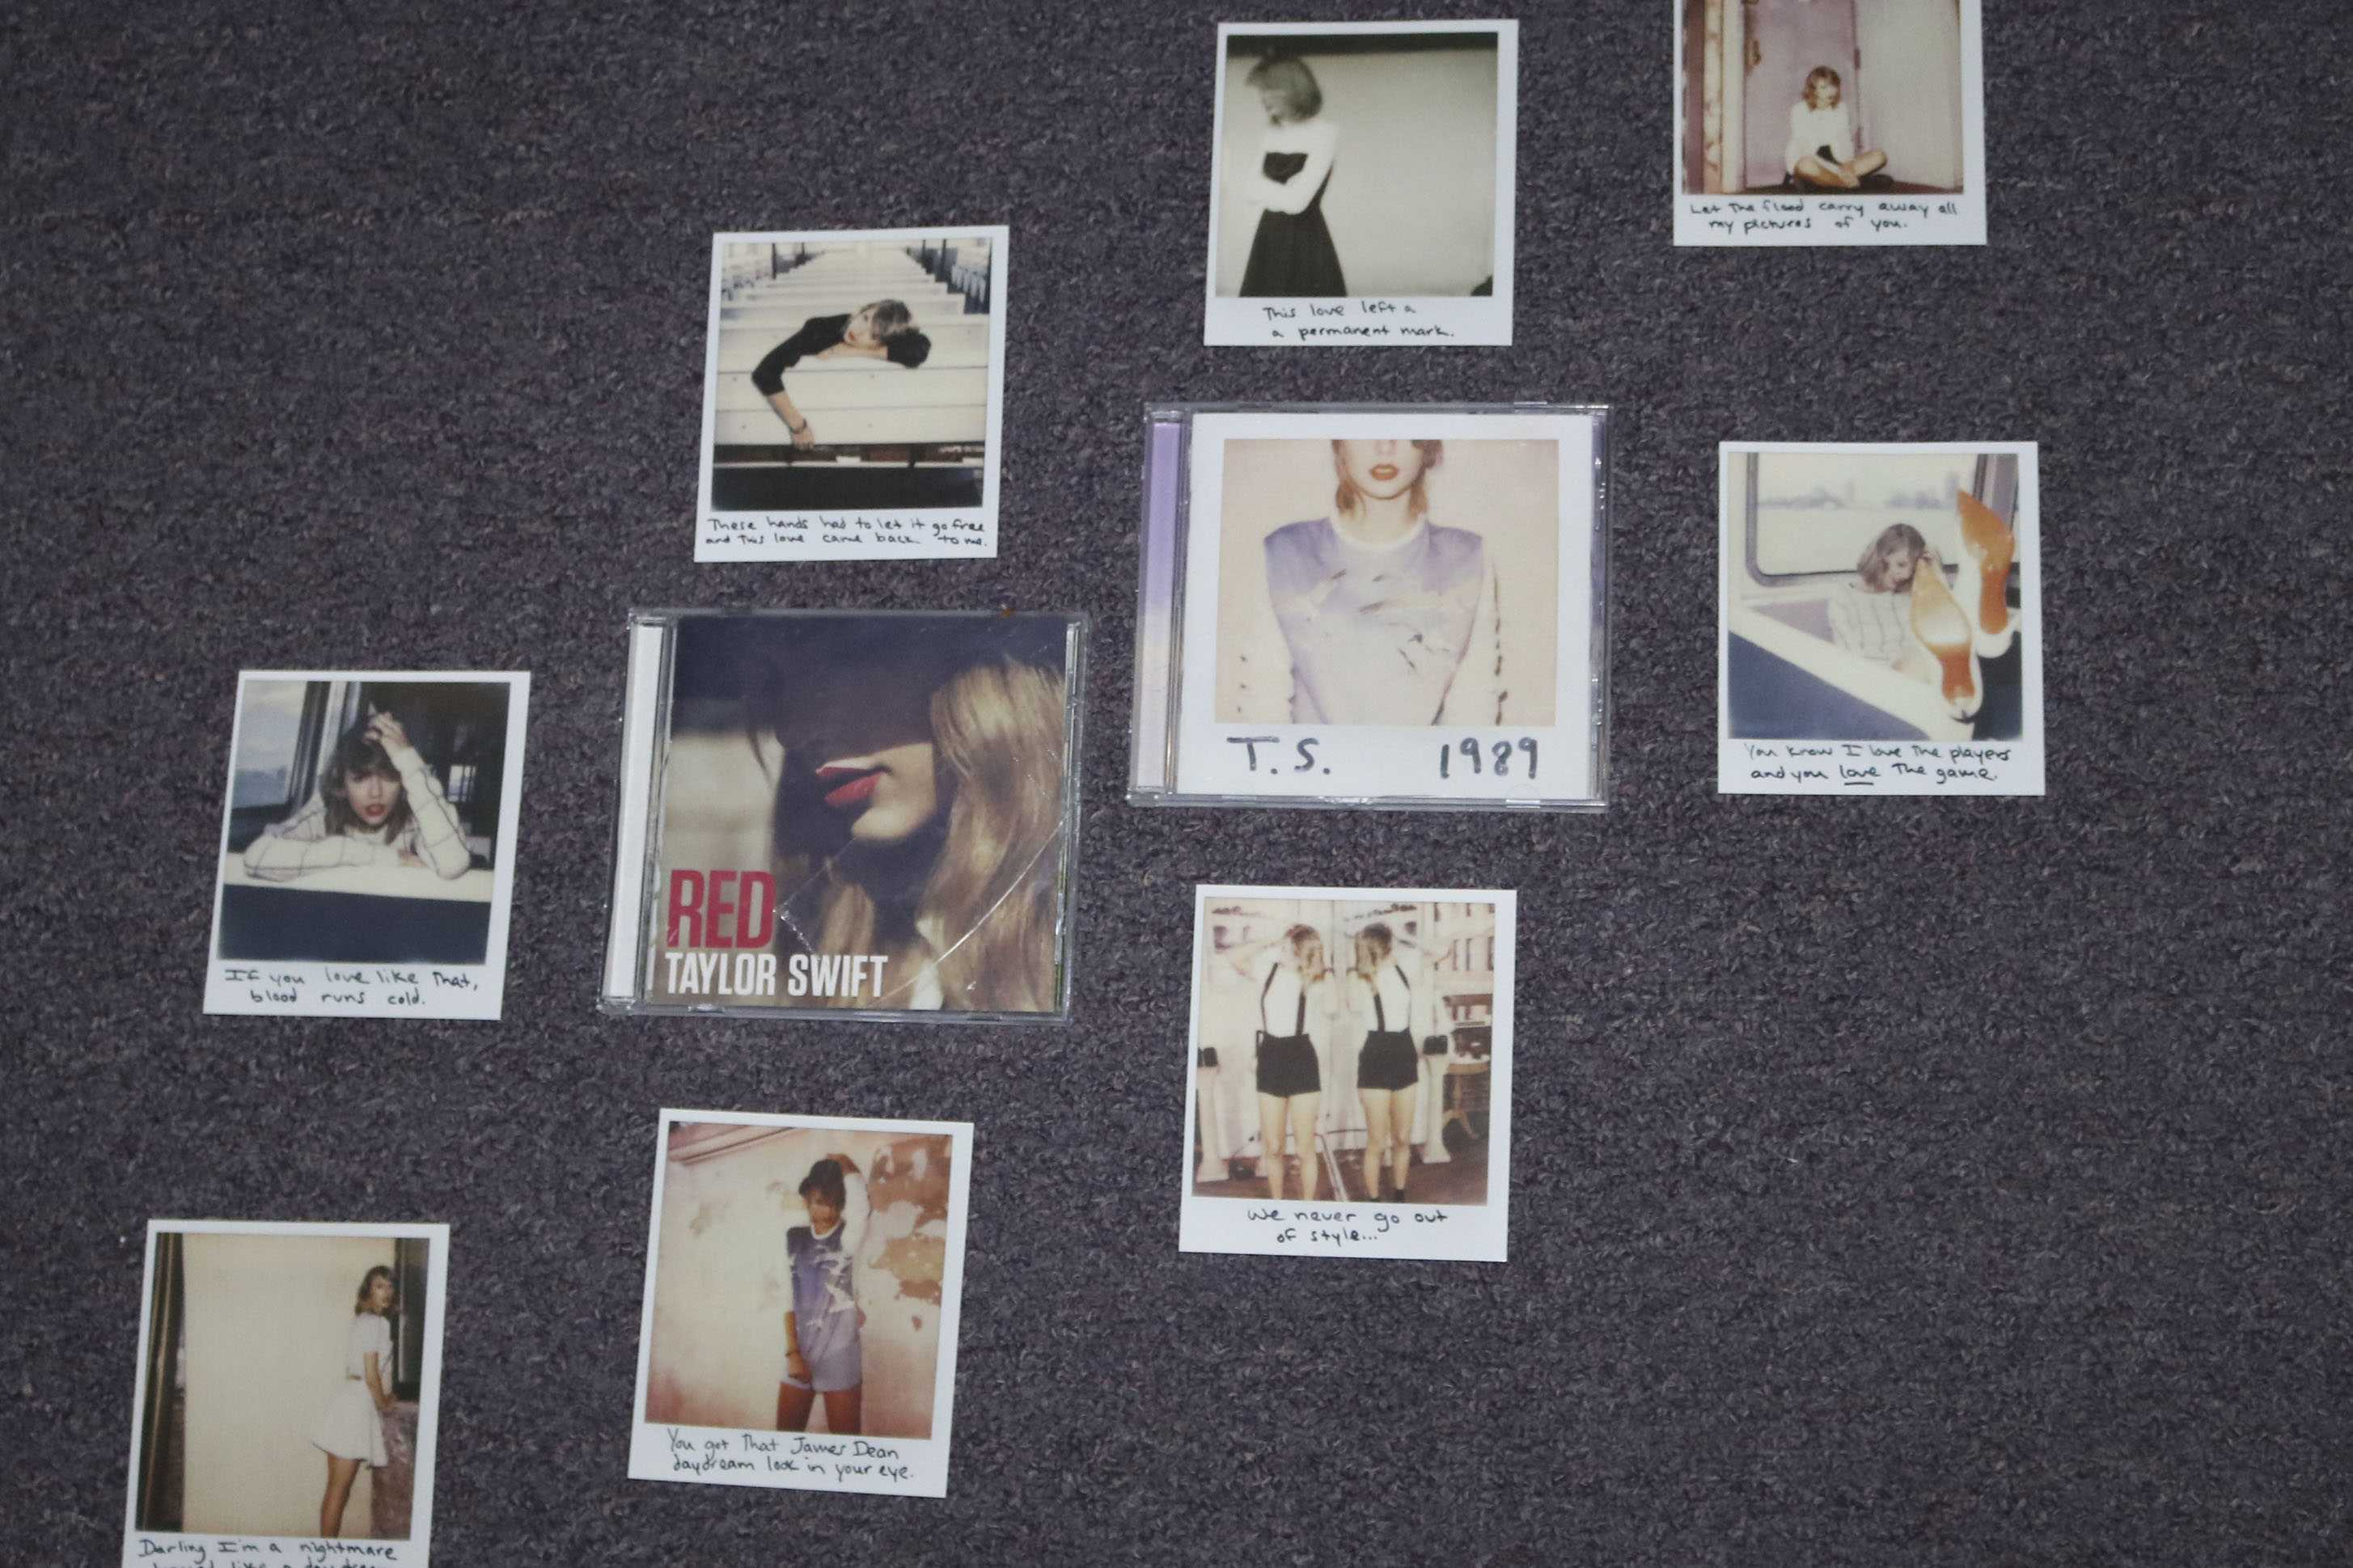 "LISTEN - Pictures of Taylor Swift surround her two most recent albums: Red and 1989. ""I like her music, old and new. She has been slacking with music but she just came off a huge tour, so I understand why she is taking a break,"" junior Kyle Eckley said. ""Hopefully she comes back soon with some good music."""